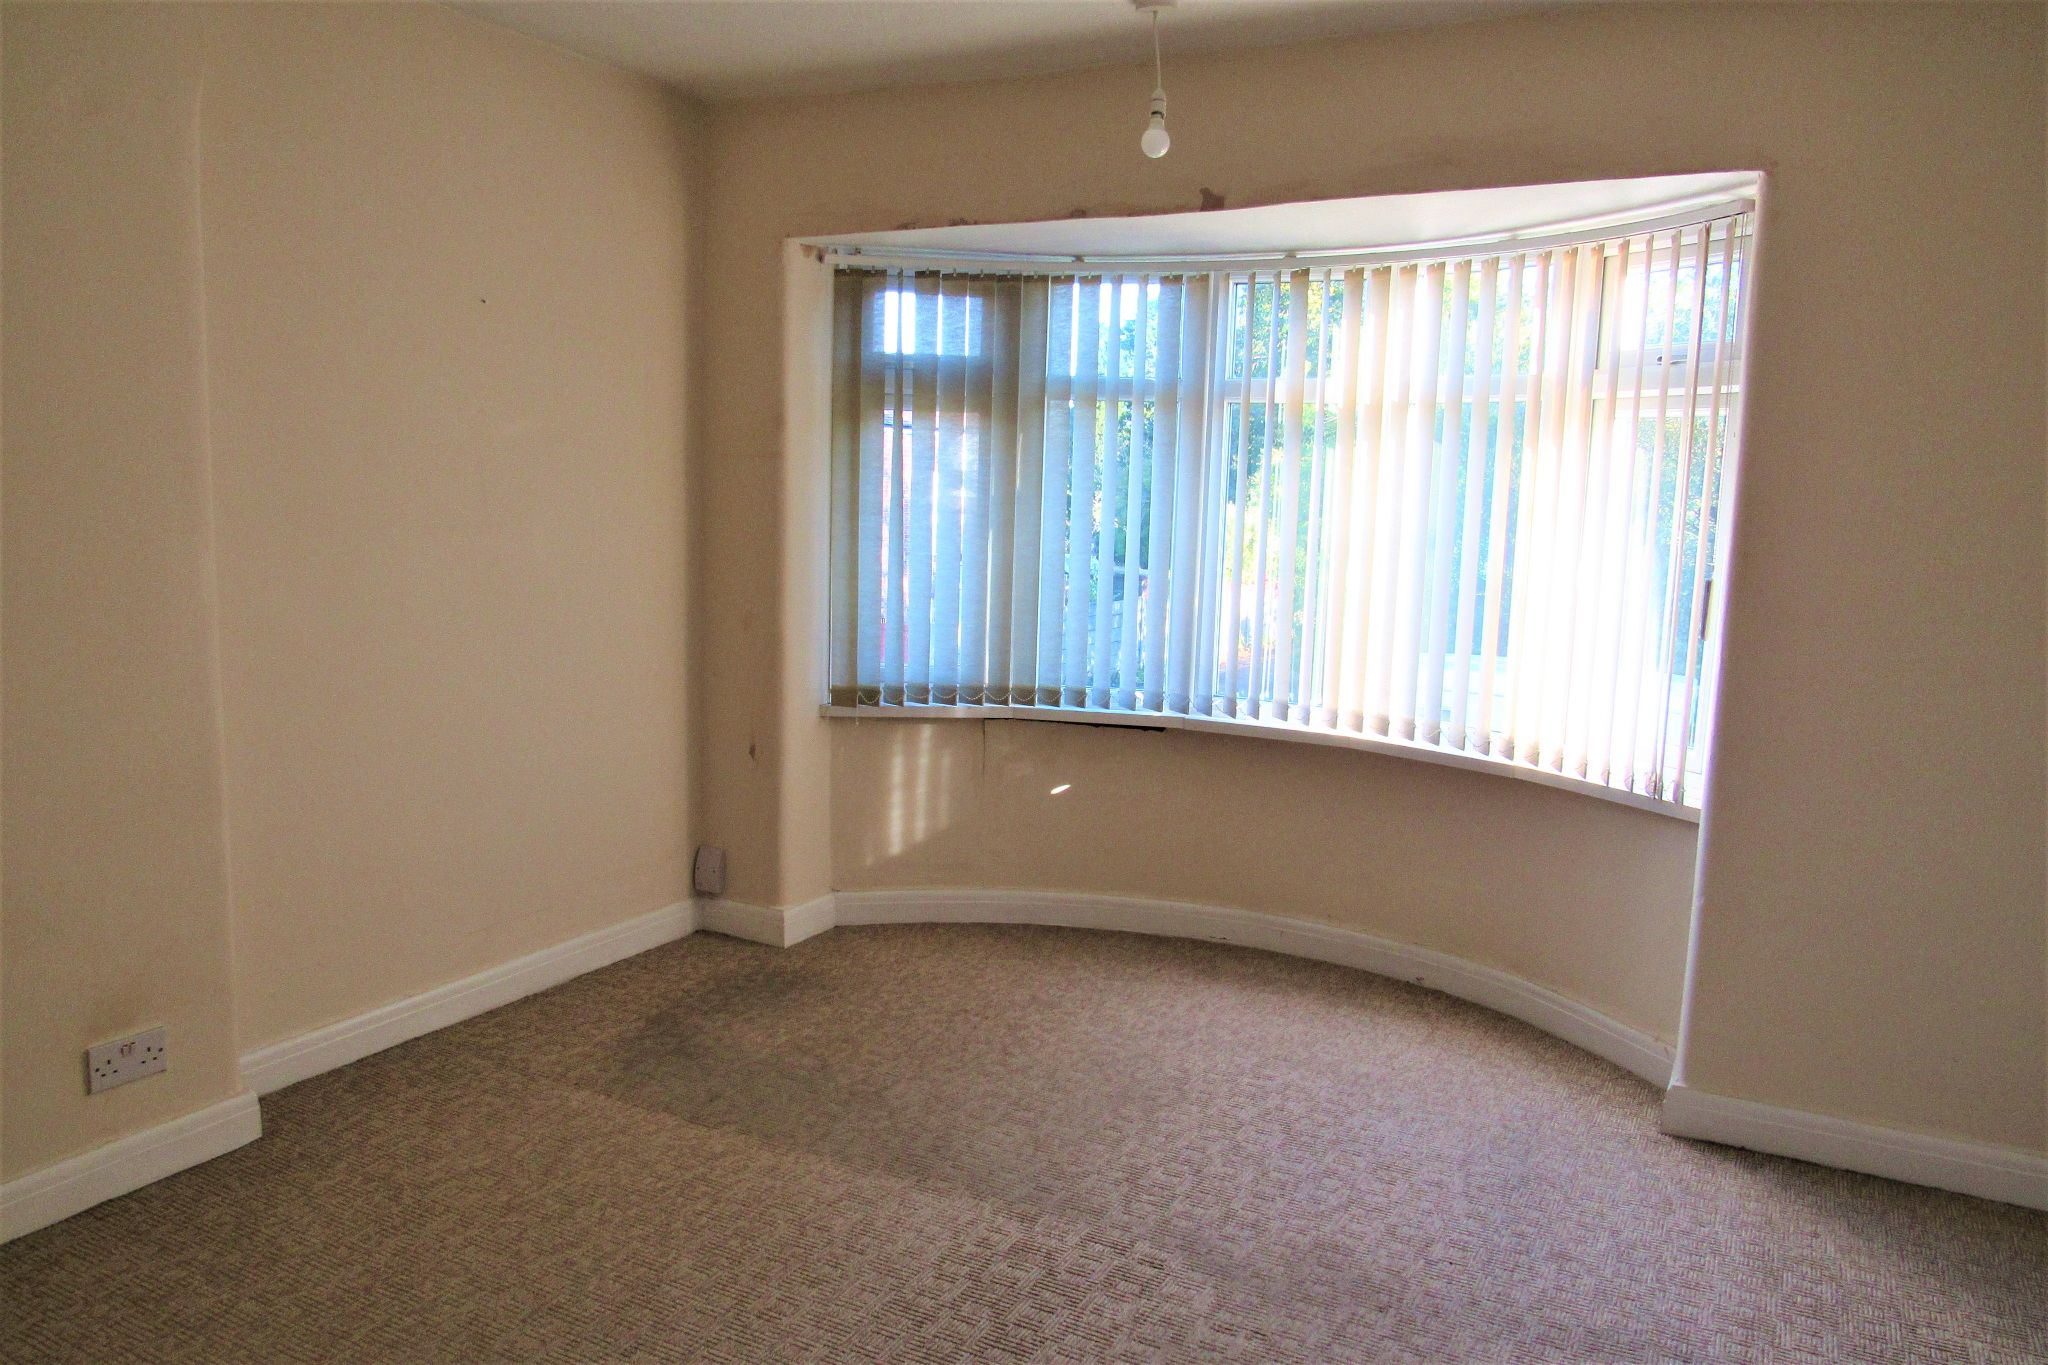 3 bedroom semi-detached house For Sale in Manchester - Photograph 19.